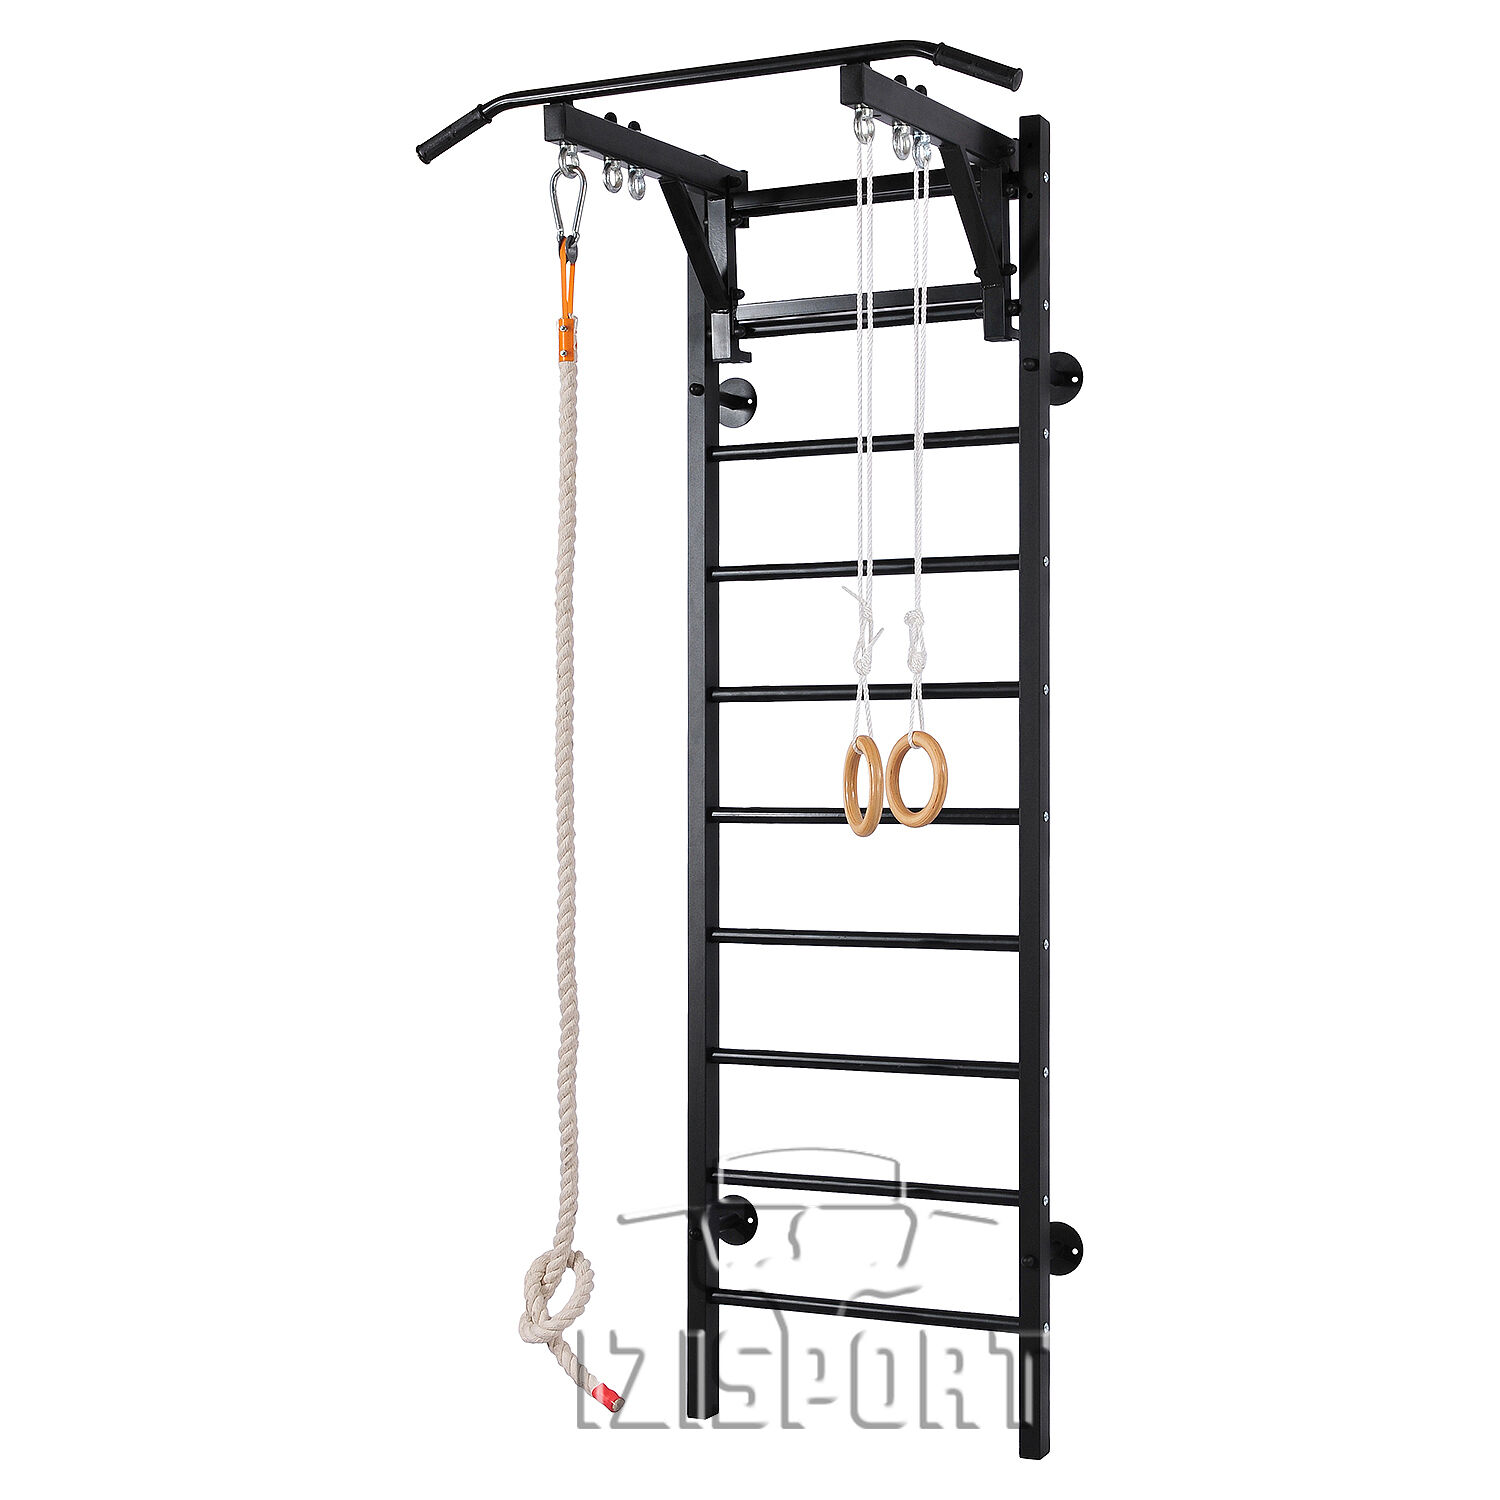 Adult's teenager's Home Gym Swedish Wall Pull Up Bar for the whole family&Ladder